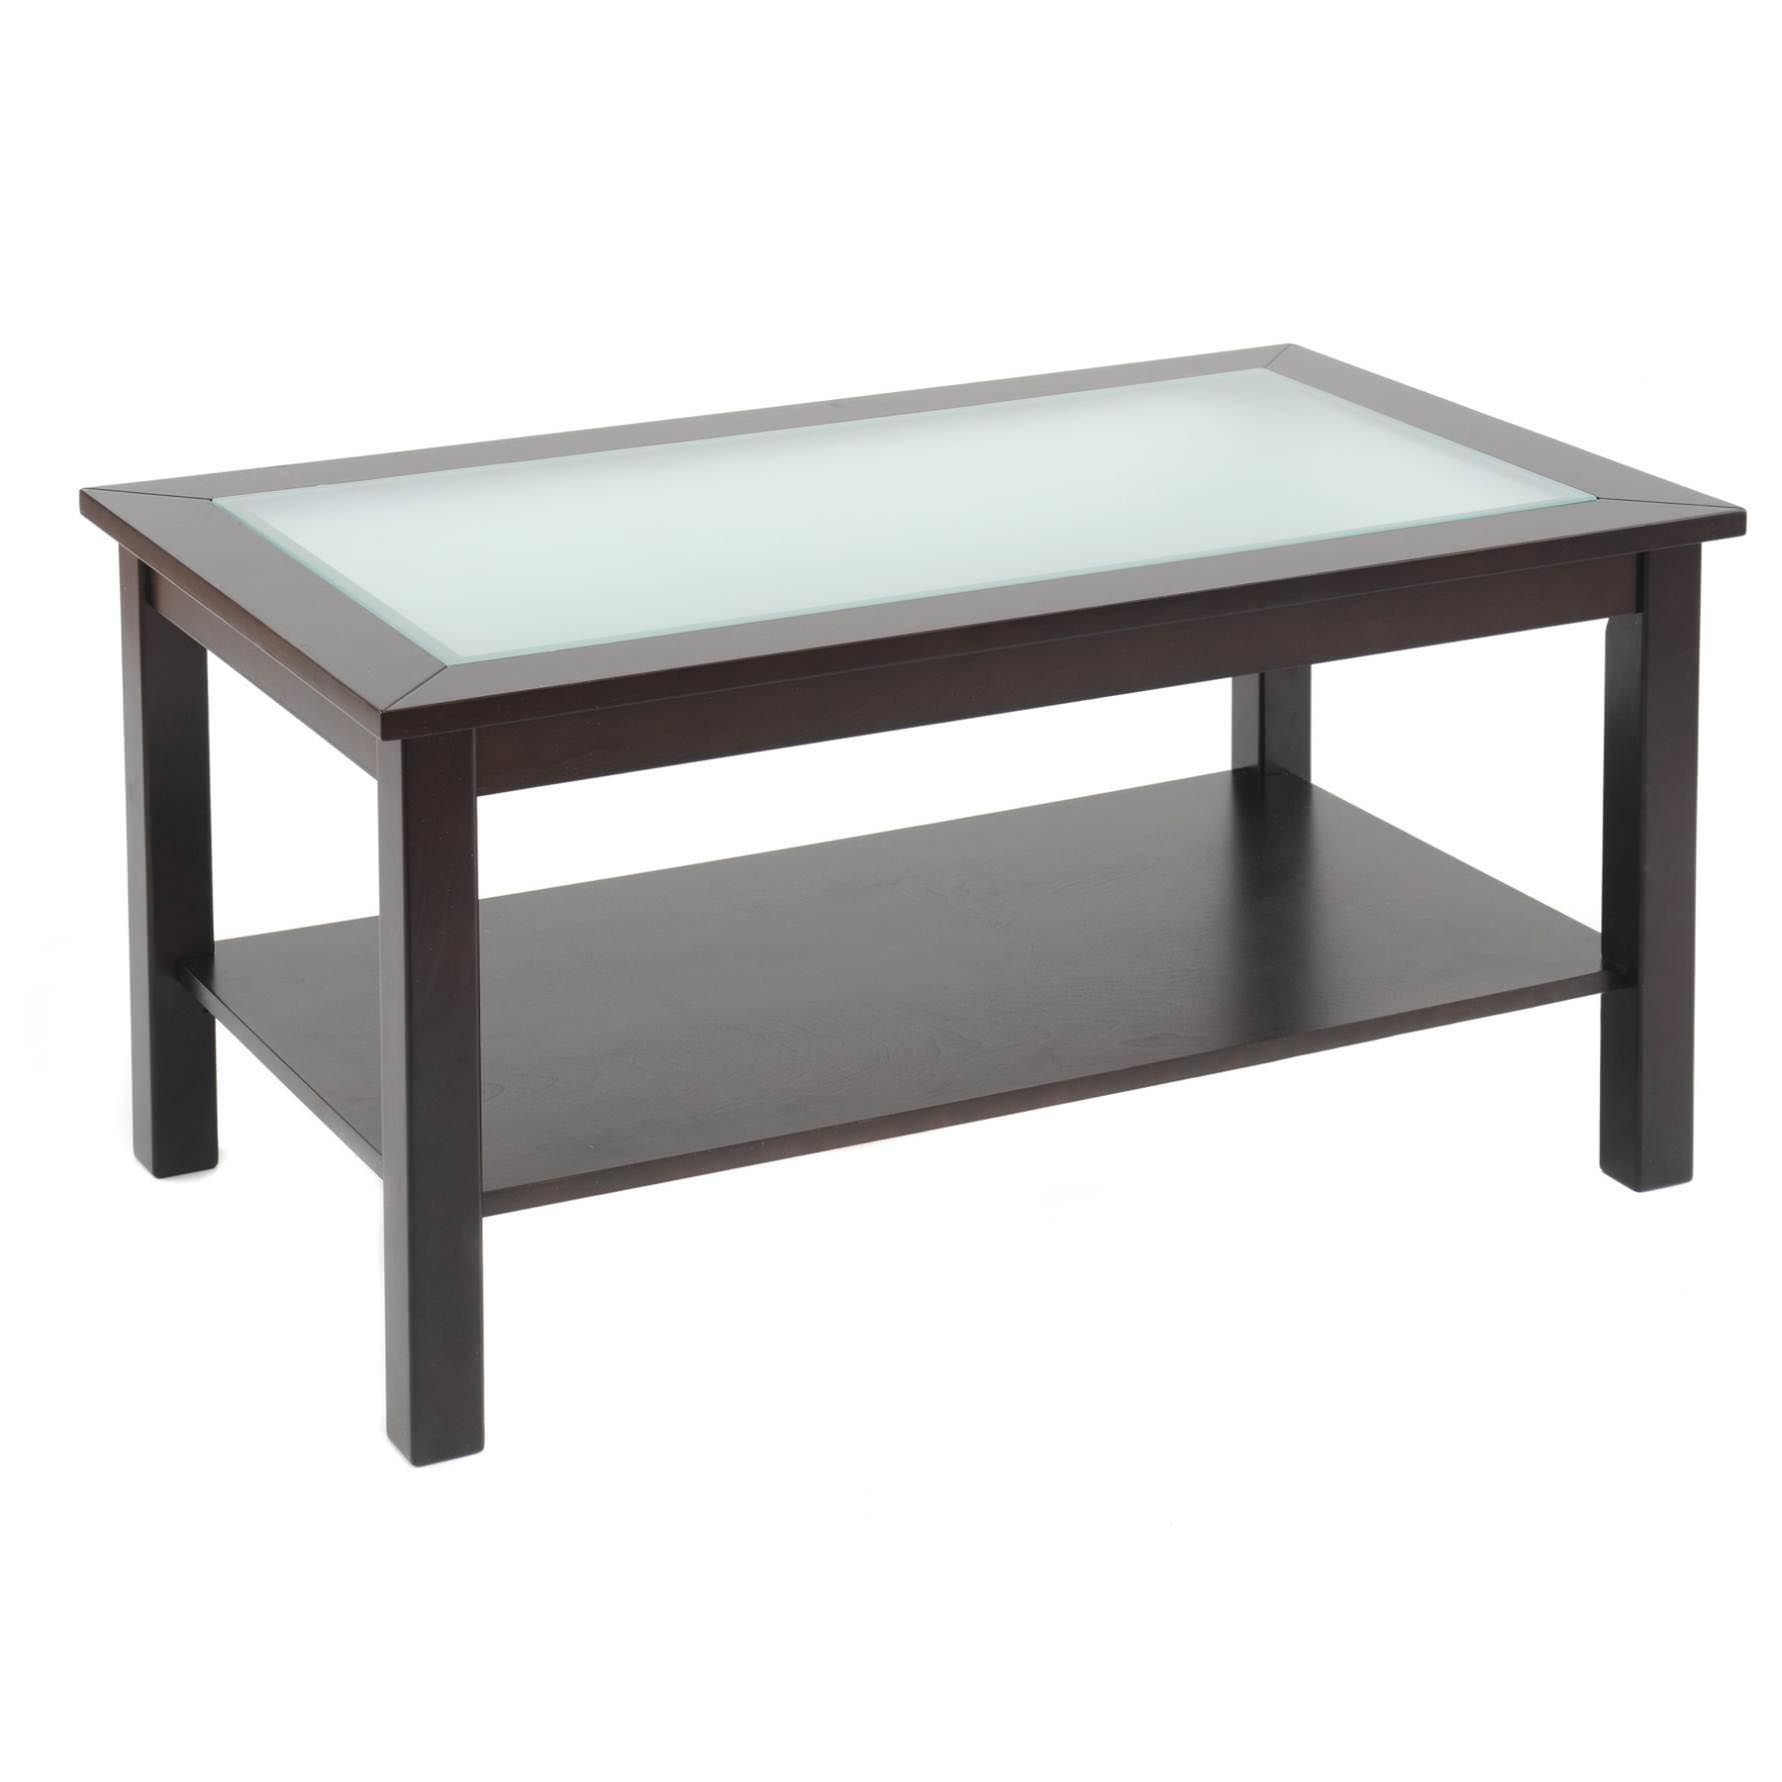 Glass Top Display Coffee Table Ikea The Coffee Table Is Now Customary Within Our Areas And Altho Coffeetabl Meja Ruang Tamu Ruangan Minimalis